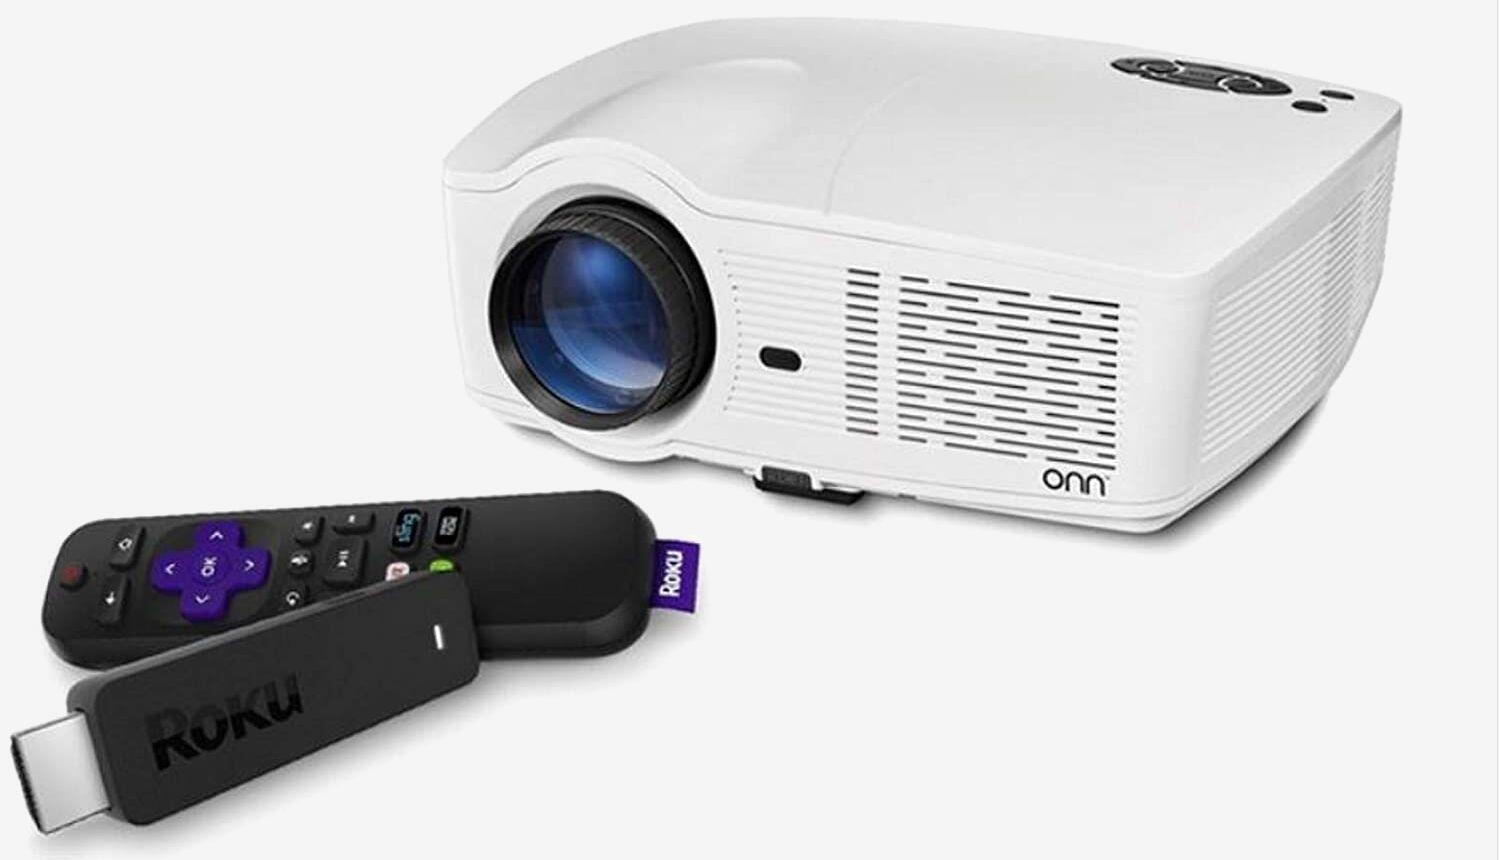 Wednesday's top deals: $56 mini massage gun, $78 Roku projector, $205 Sony WH-1000XM4     - CNET